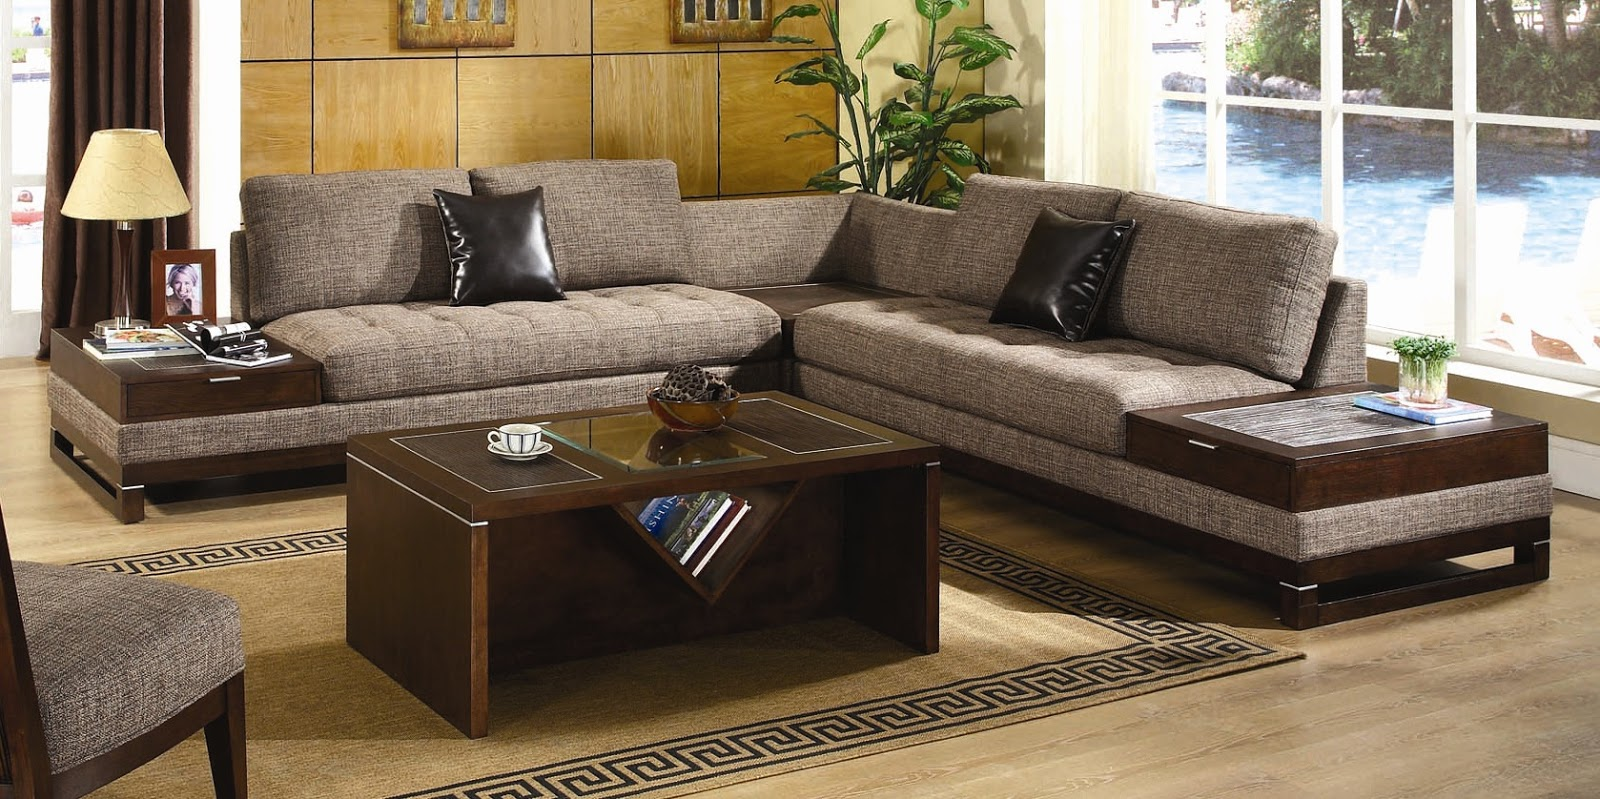 Furniture Buying Tips You Need To Know